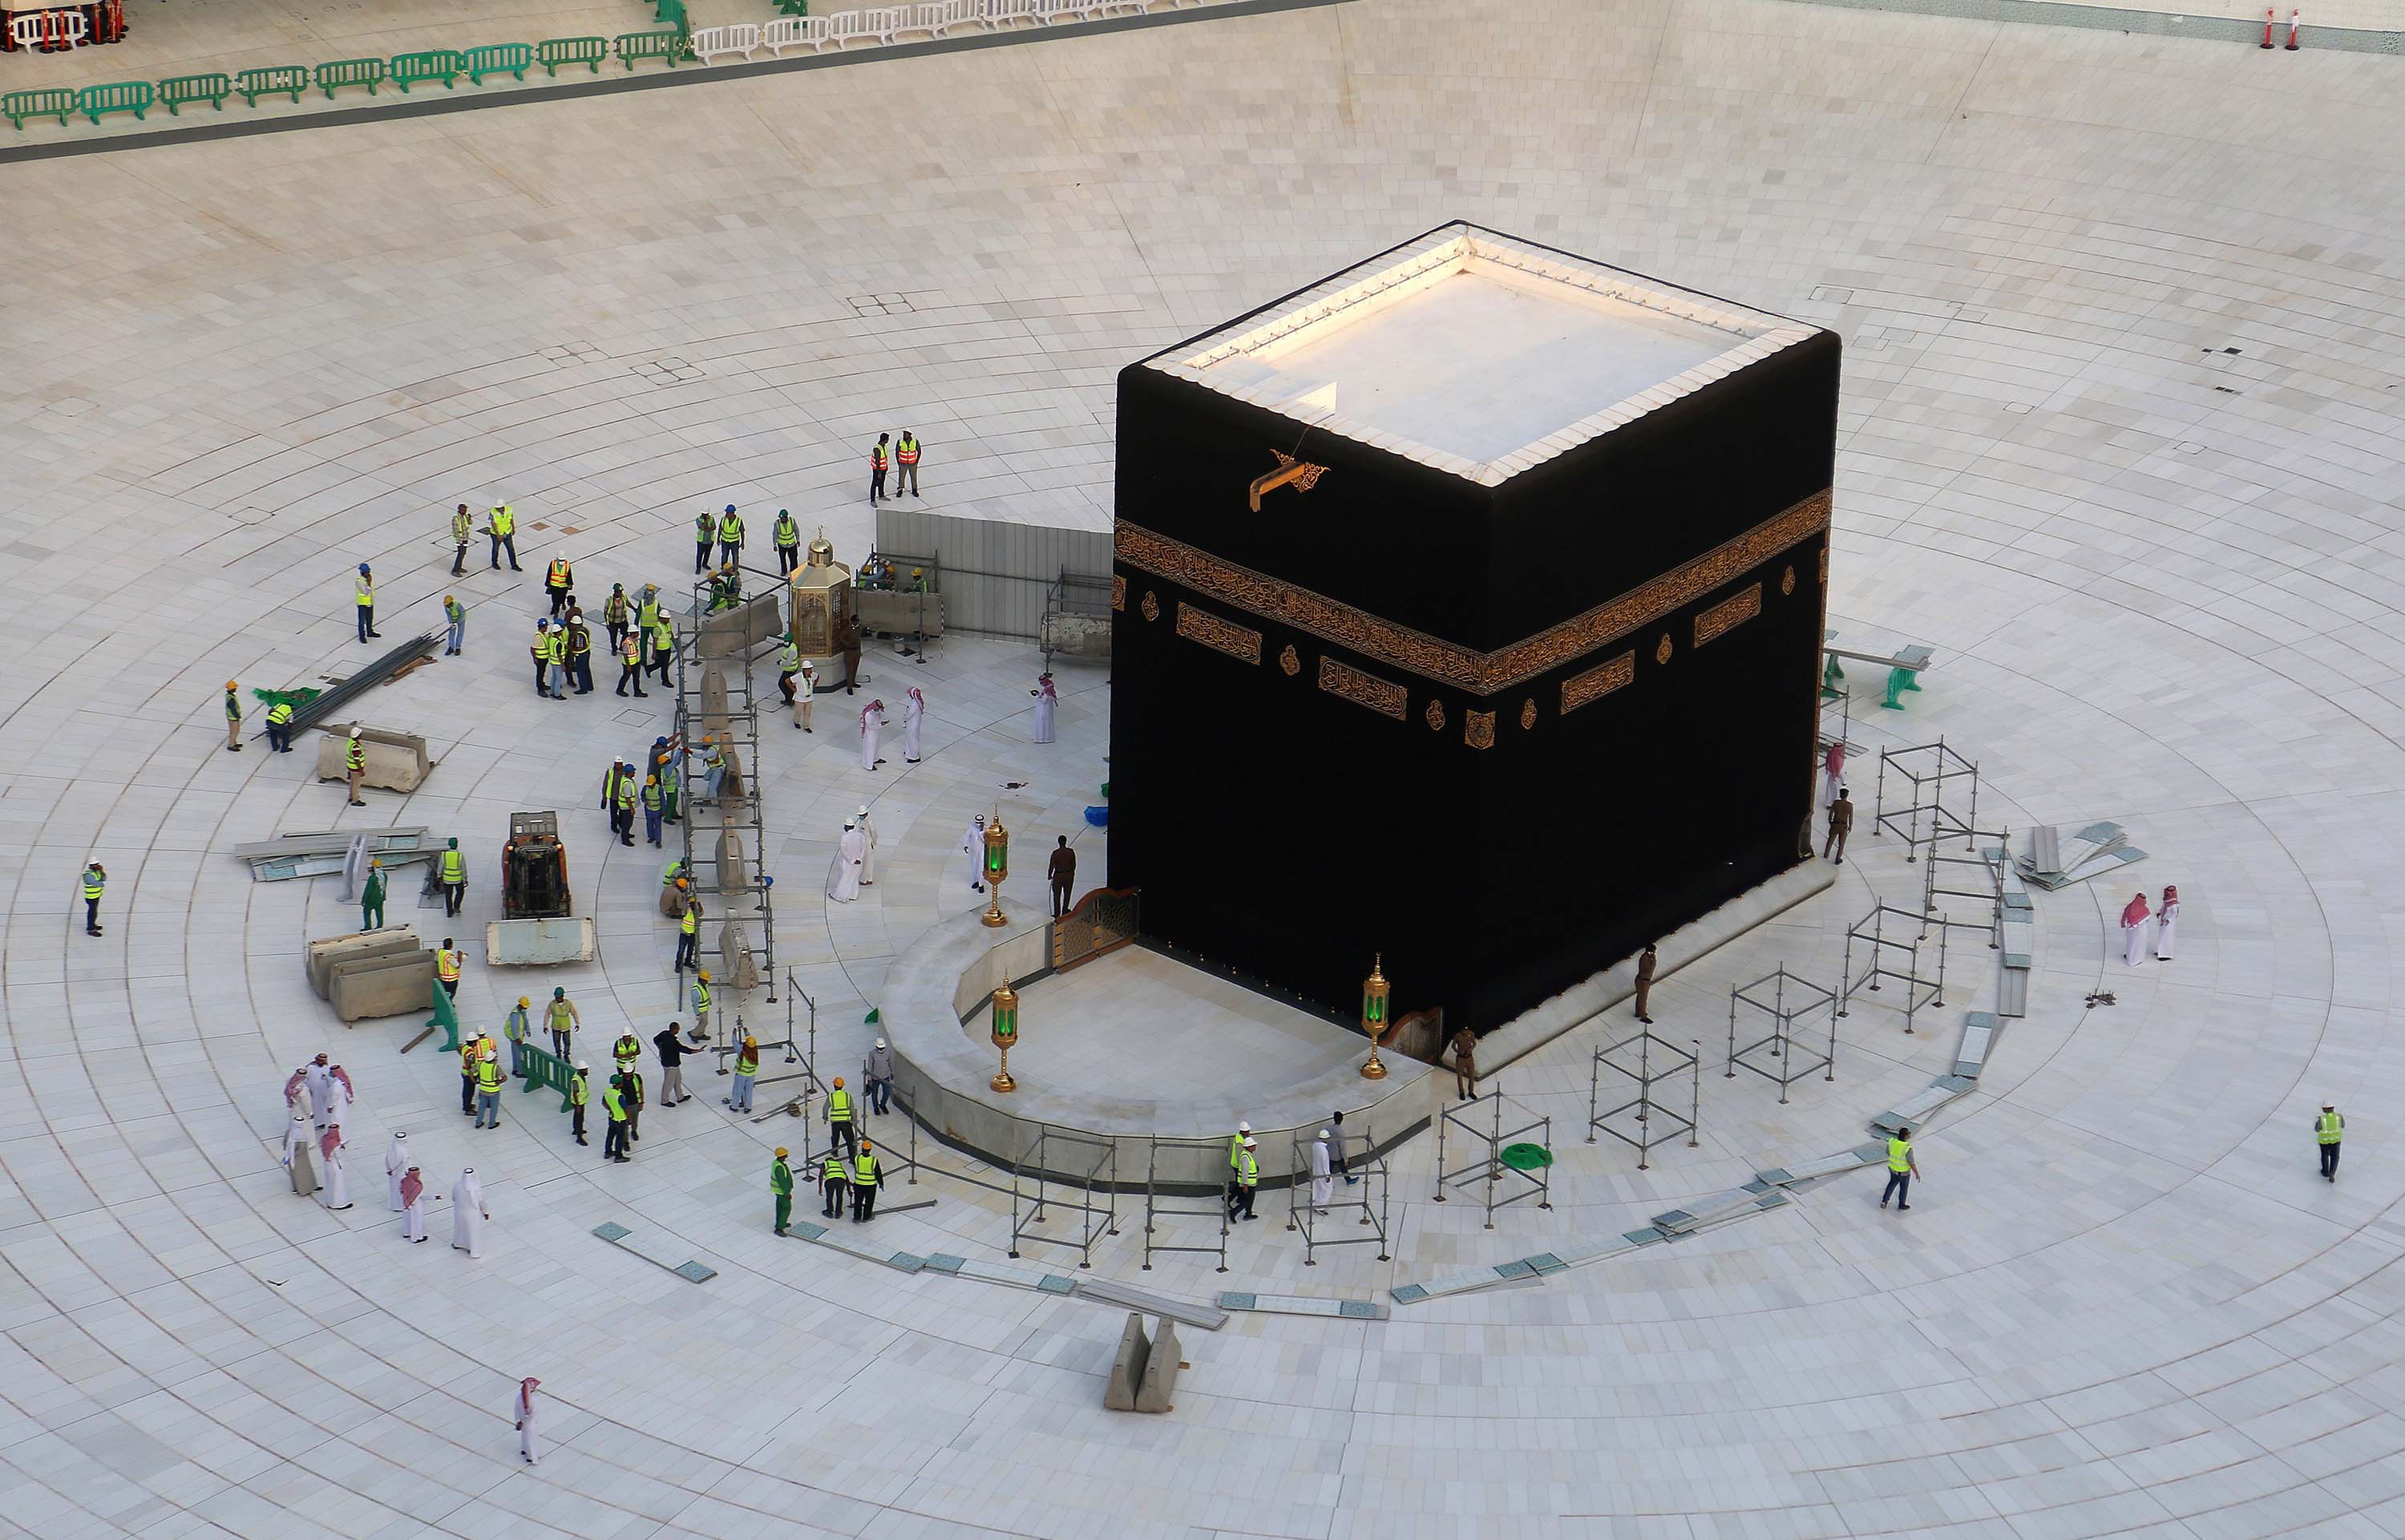 Municipal workers are seen at the Kaaba, inside Mecca's Grand Mosque, on March 5. Saudi Arabia emptied Islam's holiest site for sterilization over coronavirus fears, an unprecedented move after the kingdom suspended the year-round umrah pilgrimage.